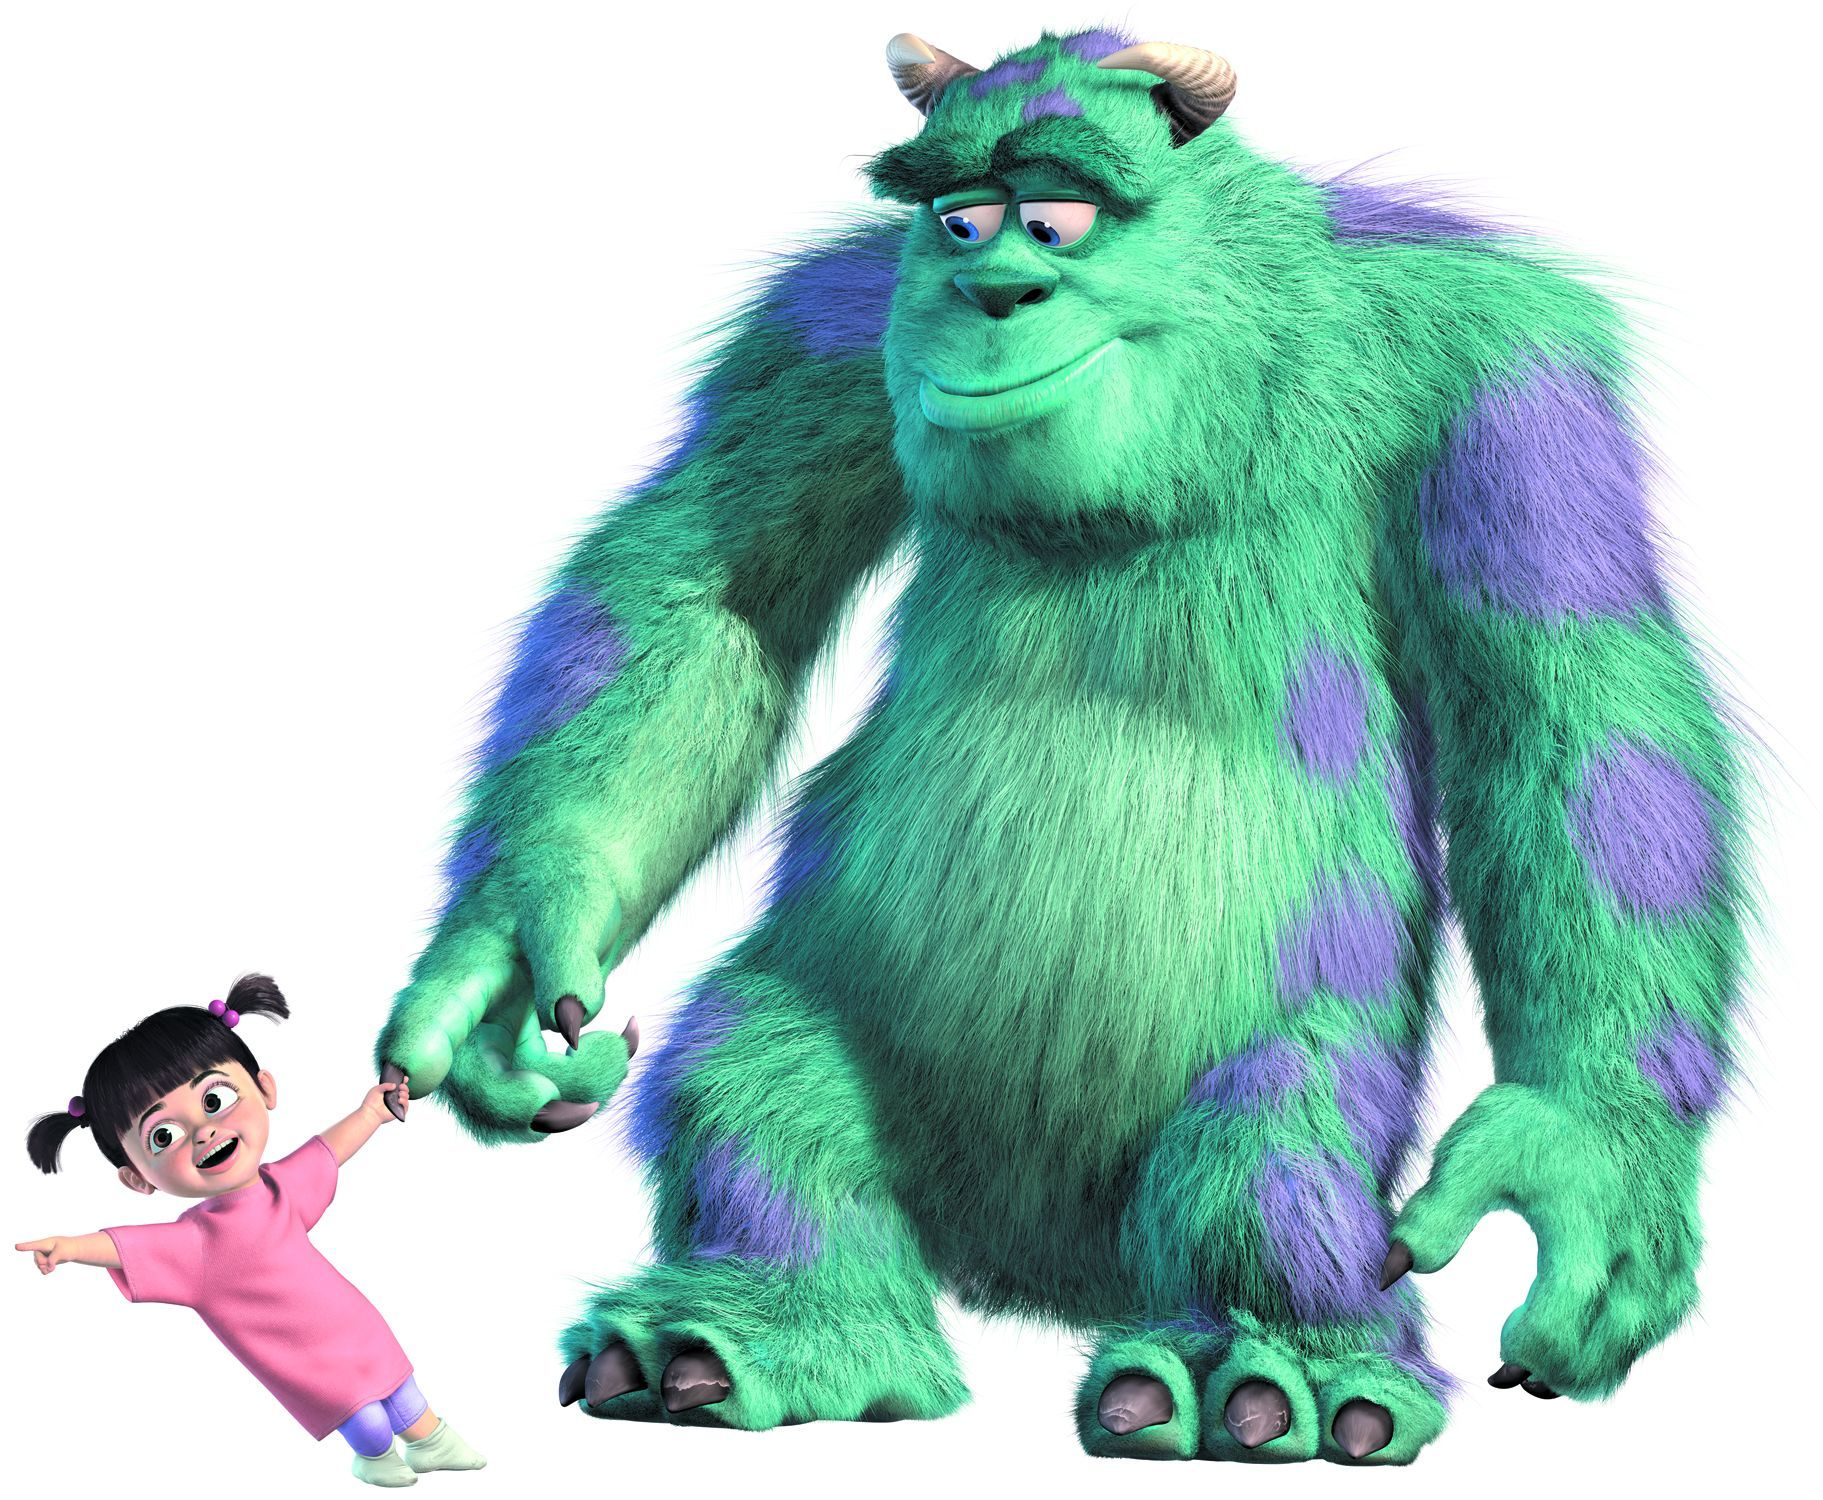 Sully_and_Boo.jpg